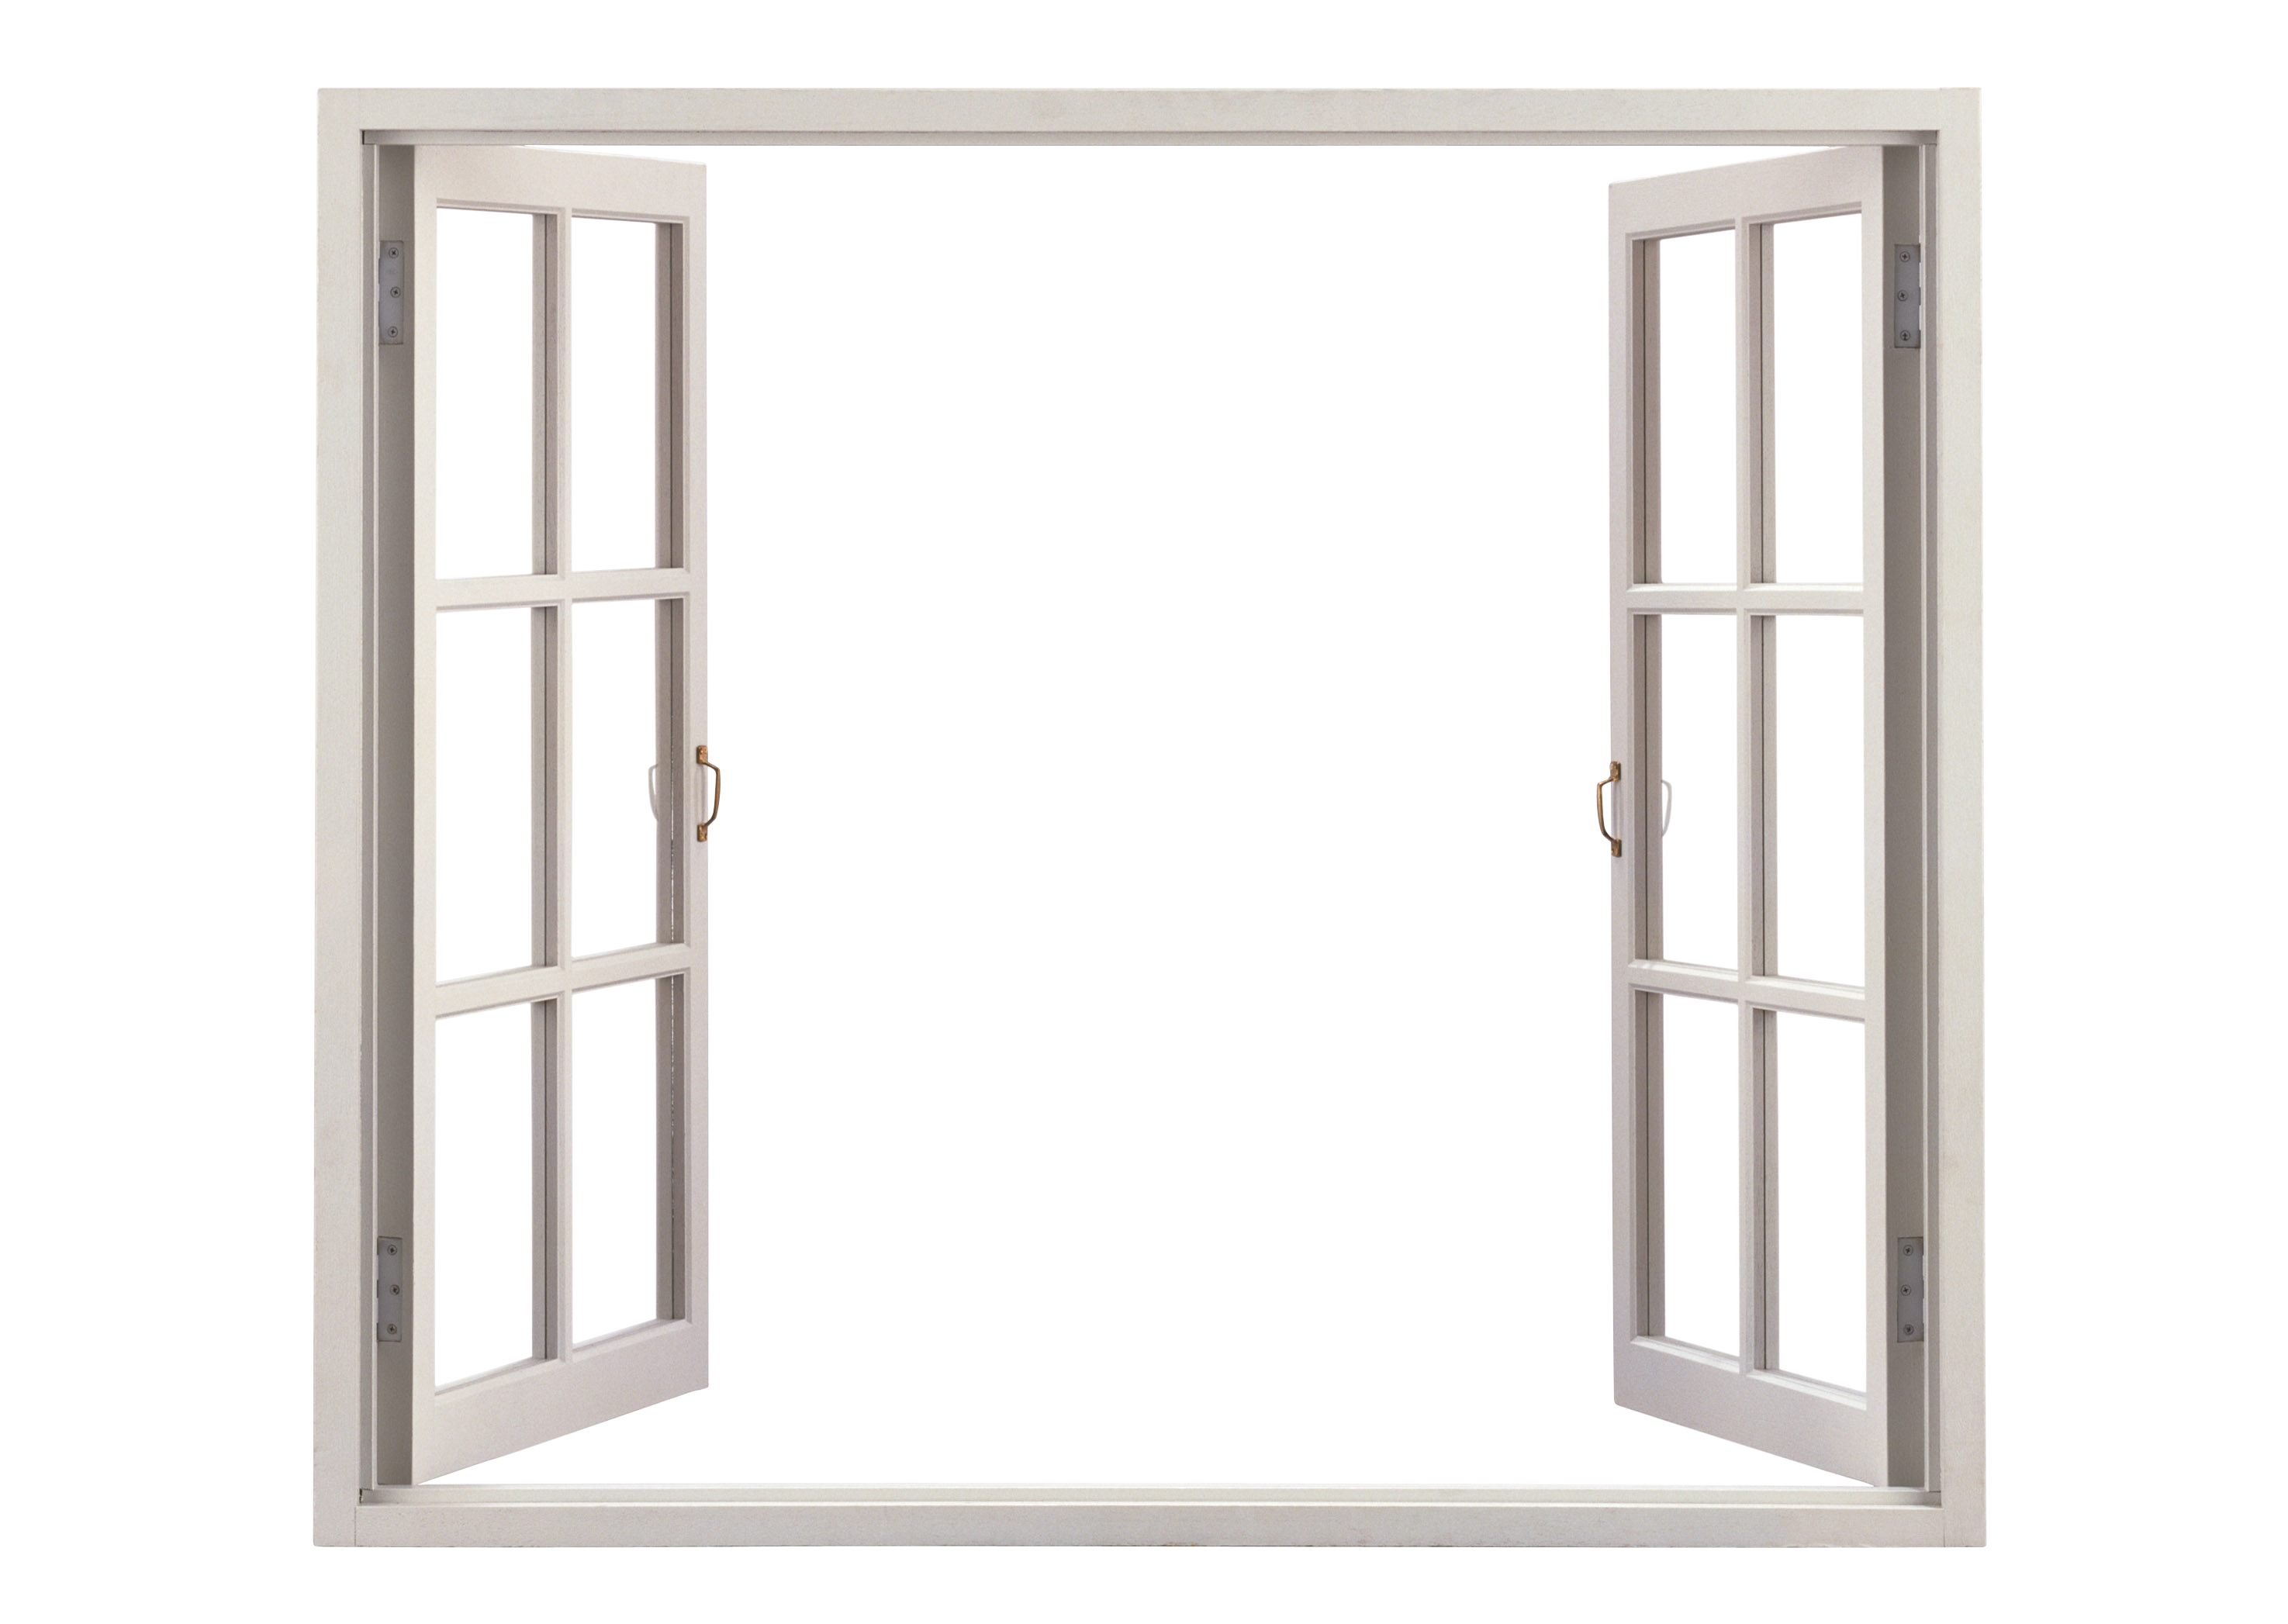 Window Frame Clipart.